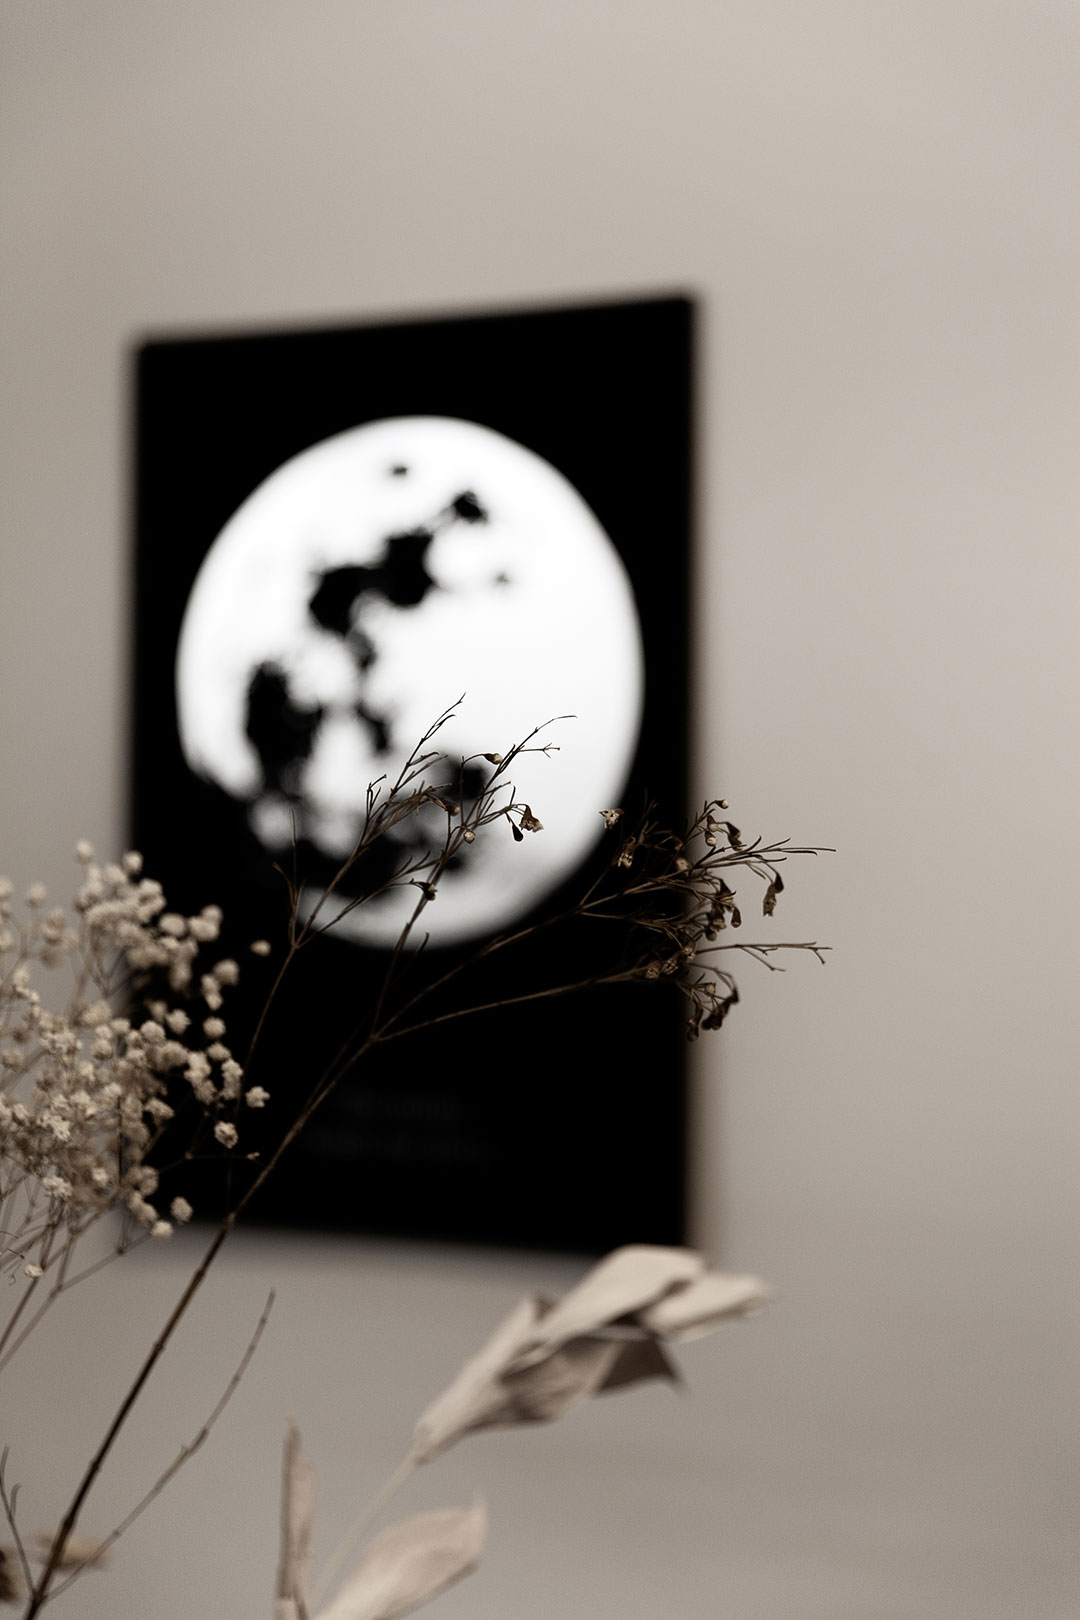 Juliste | The moon made me do it 2